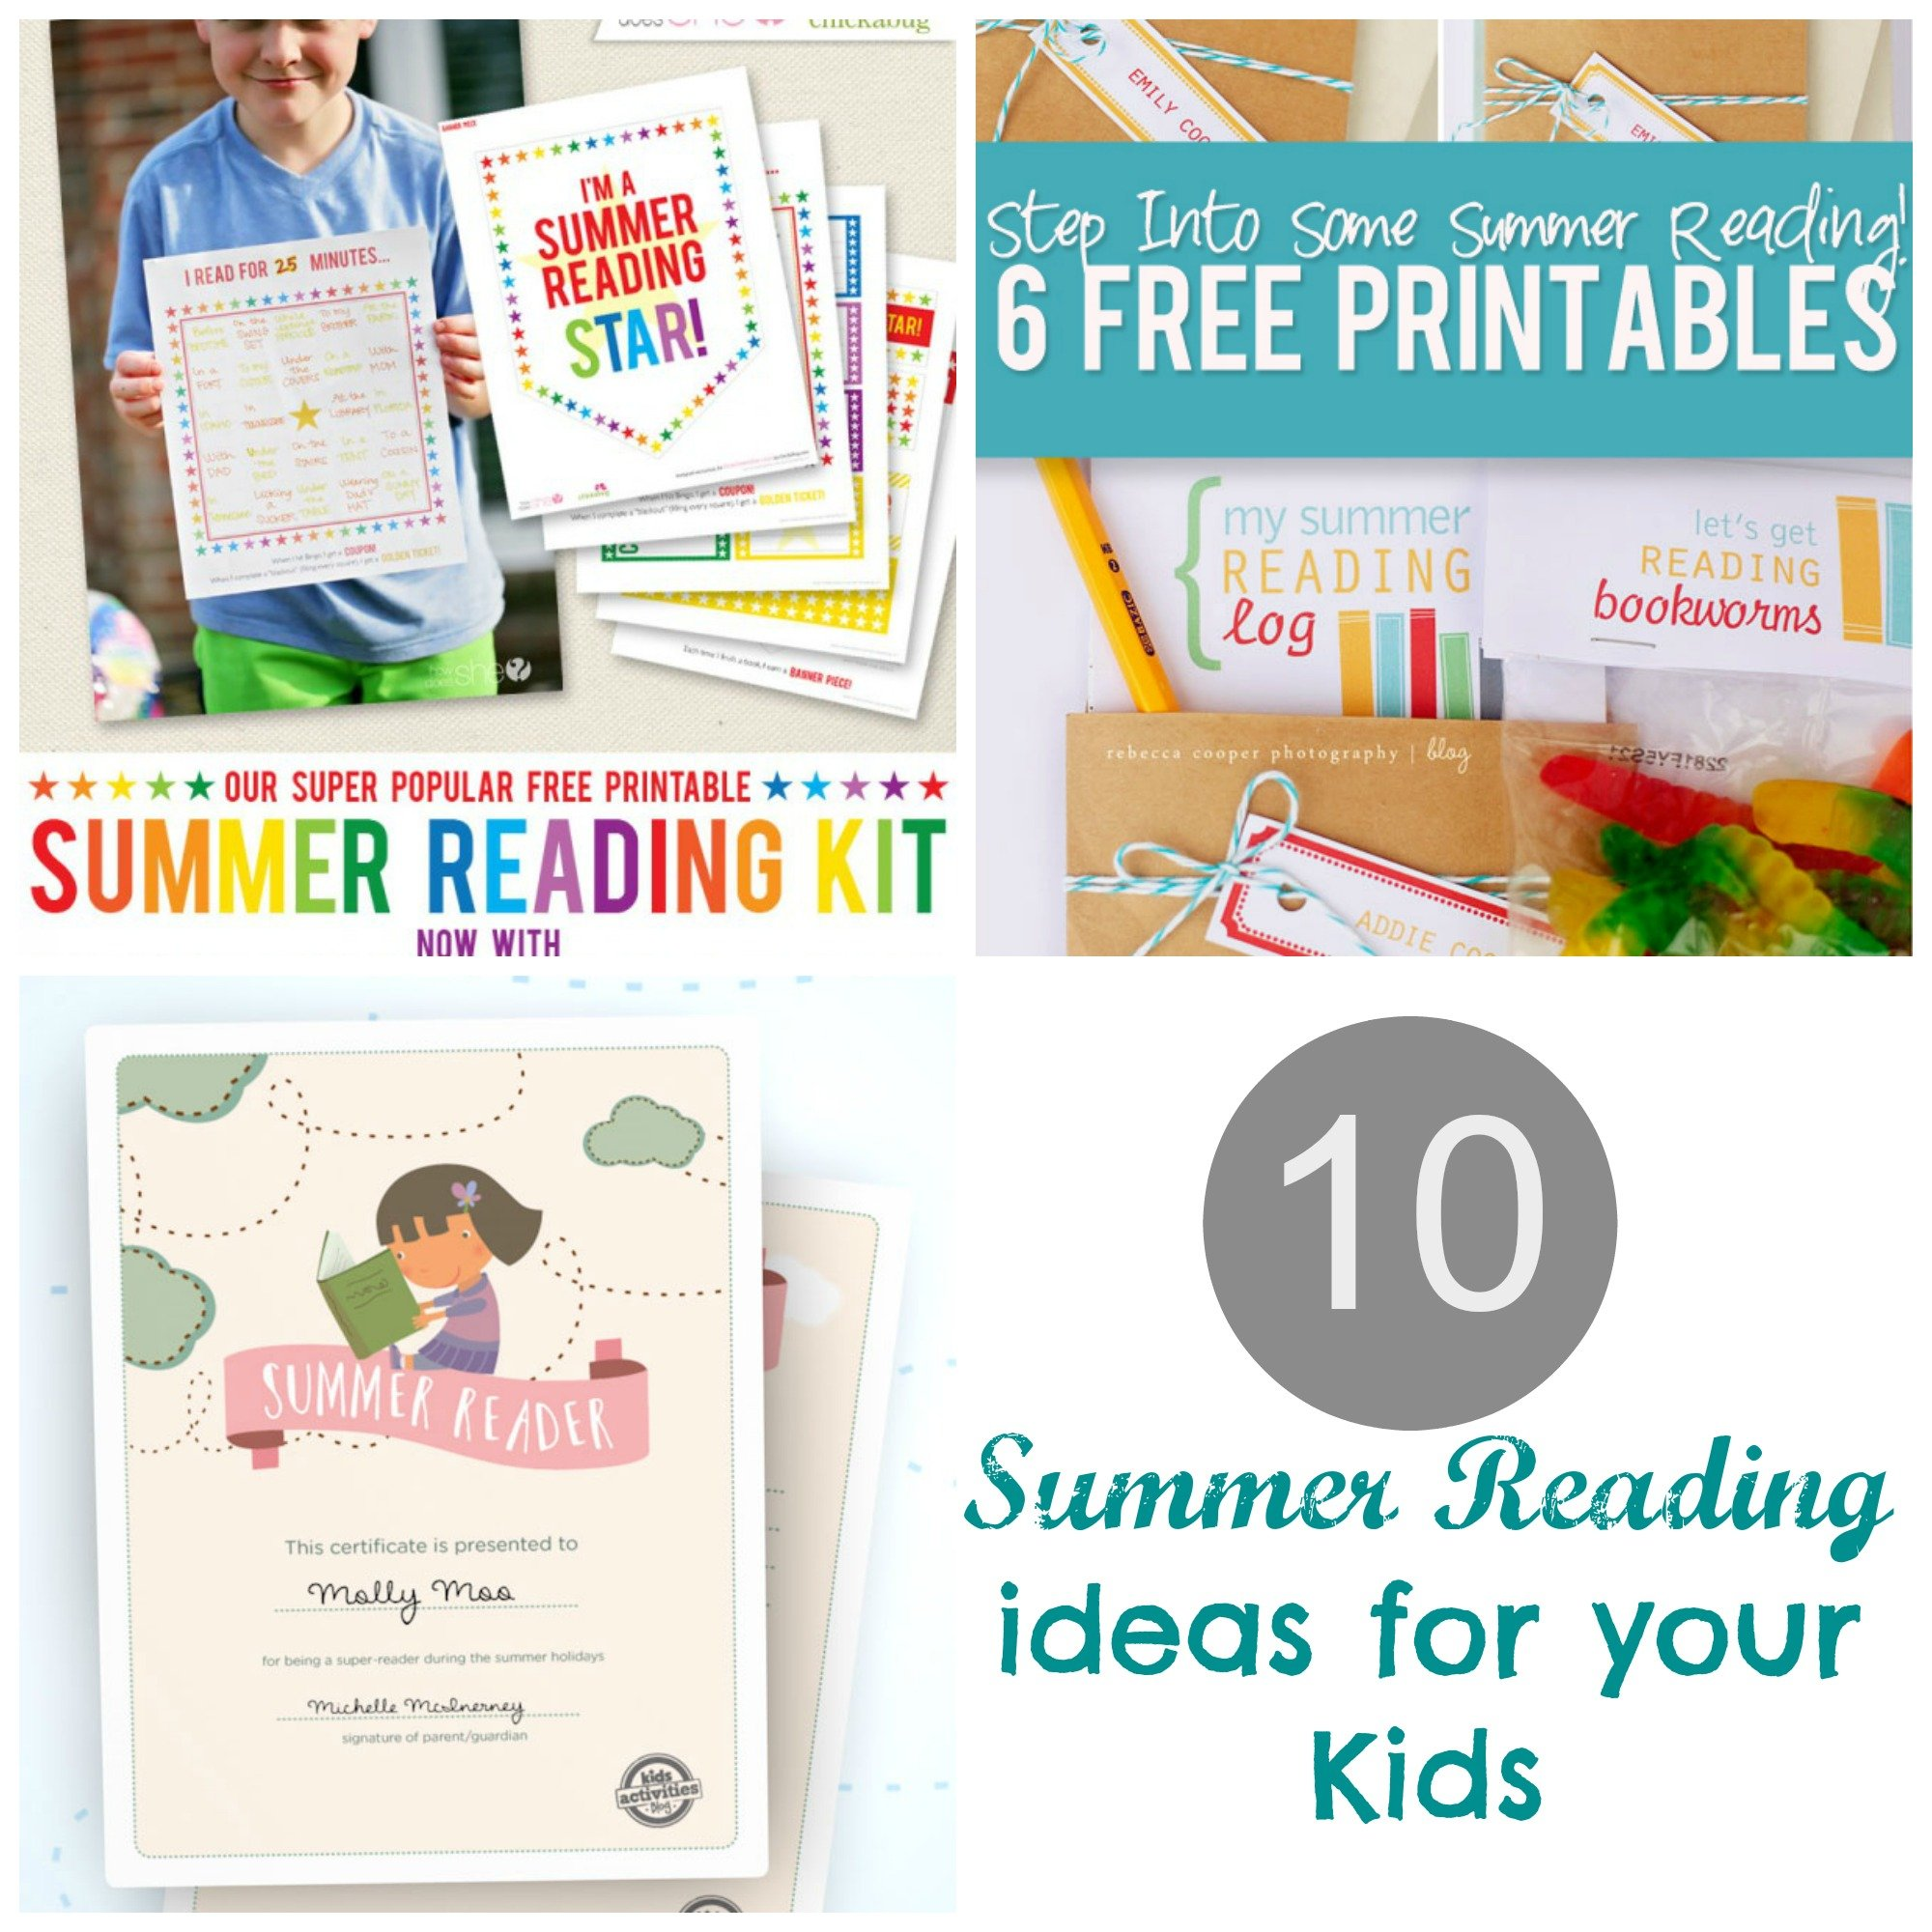 10 summer reading ideas for your kids!